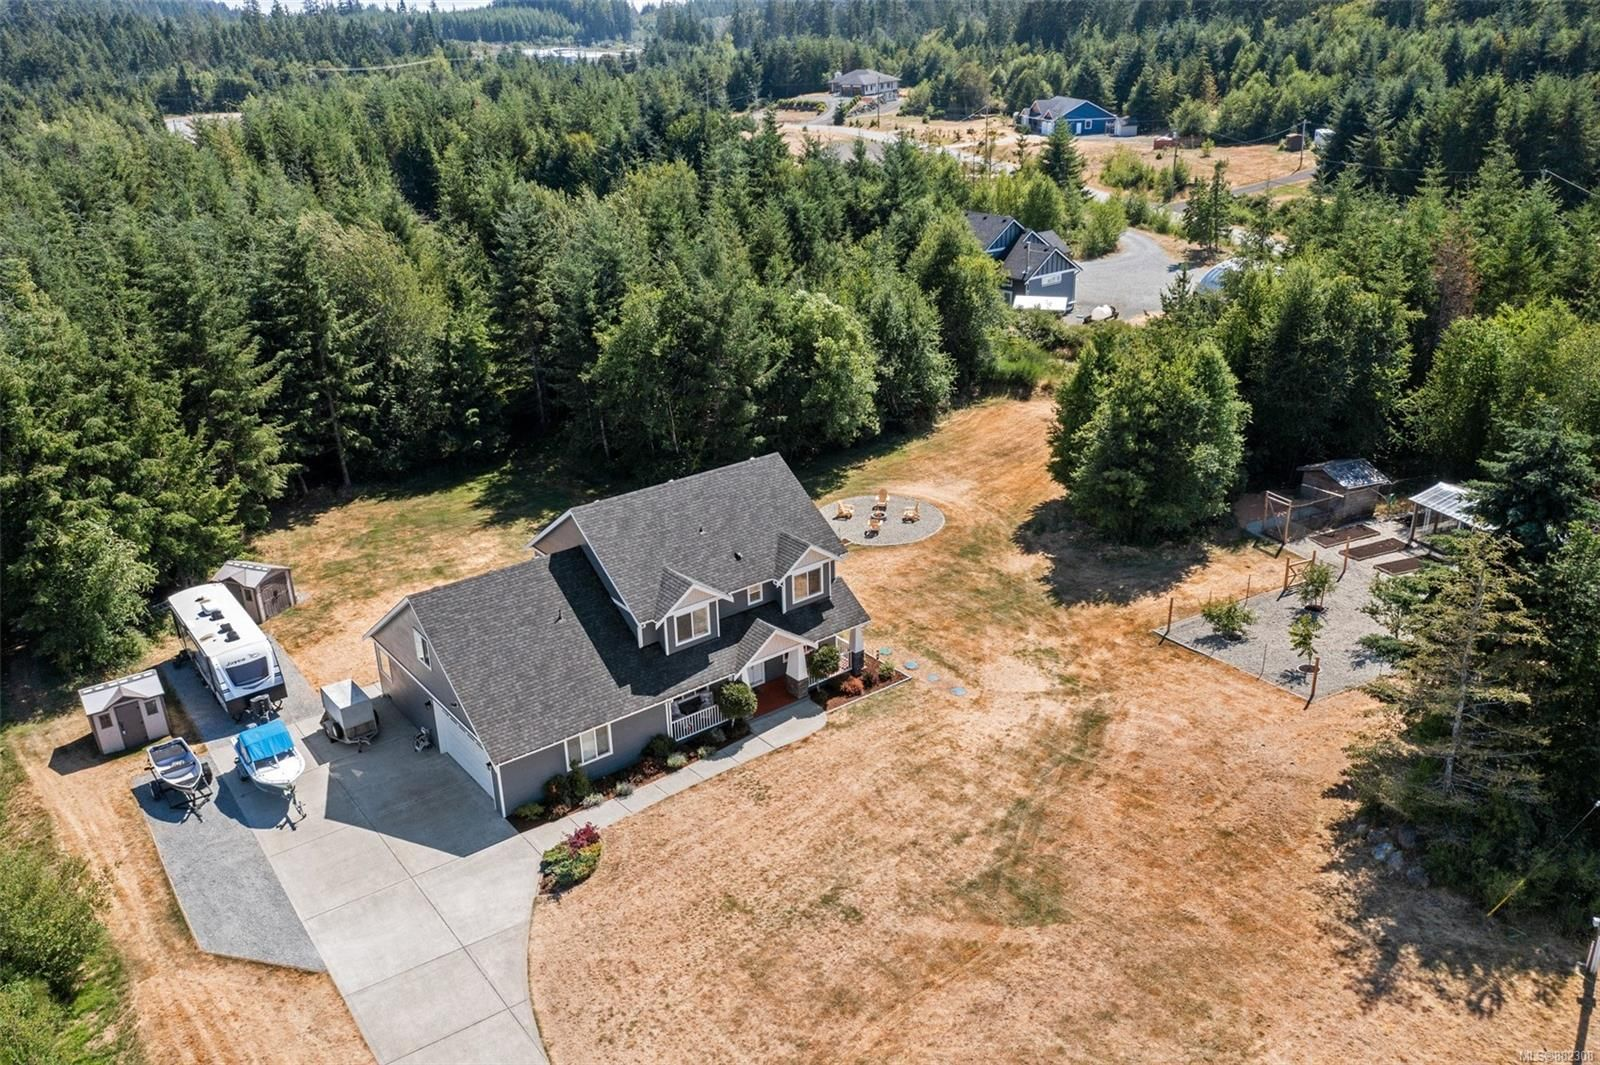 Main Photo: 7552 Lemare Cres in : Sk Otter Point House for sale (Sooke)  : MLS®# 882308